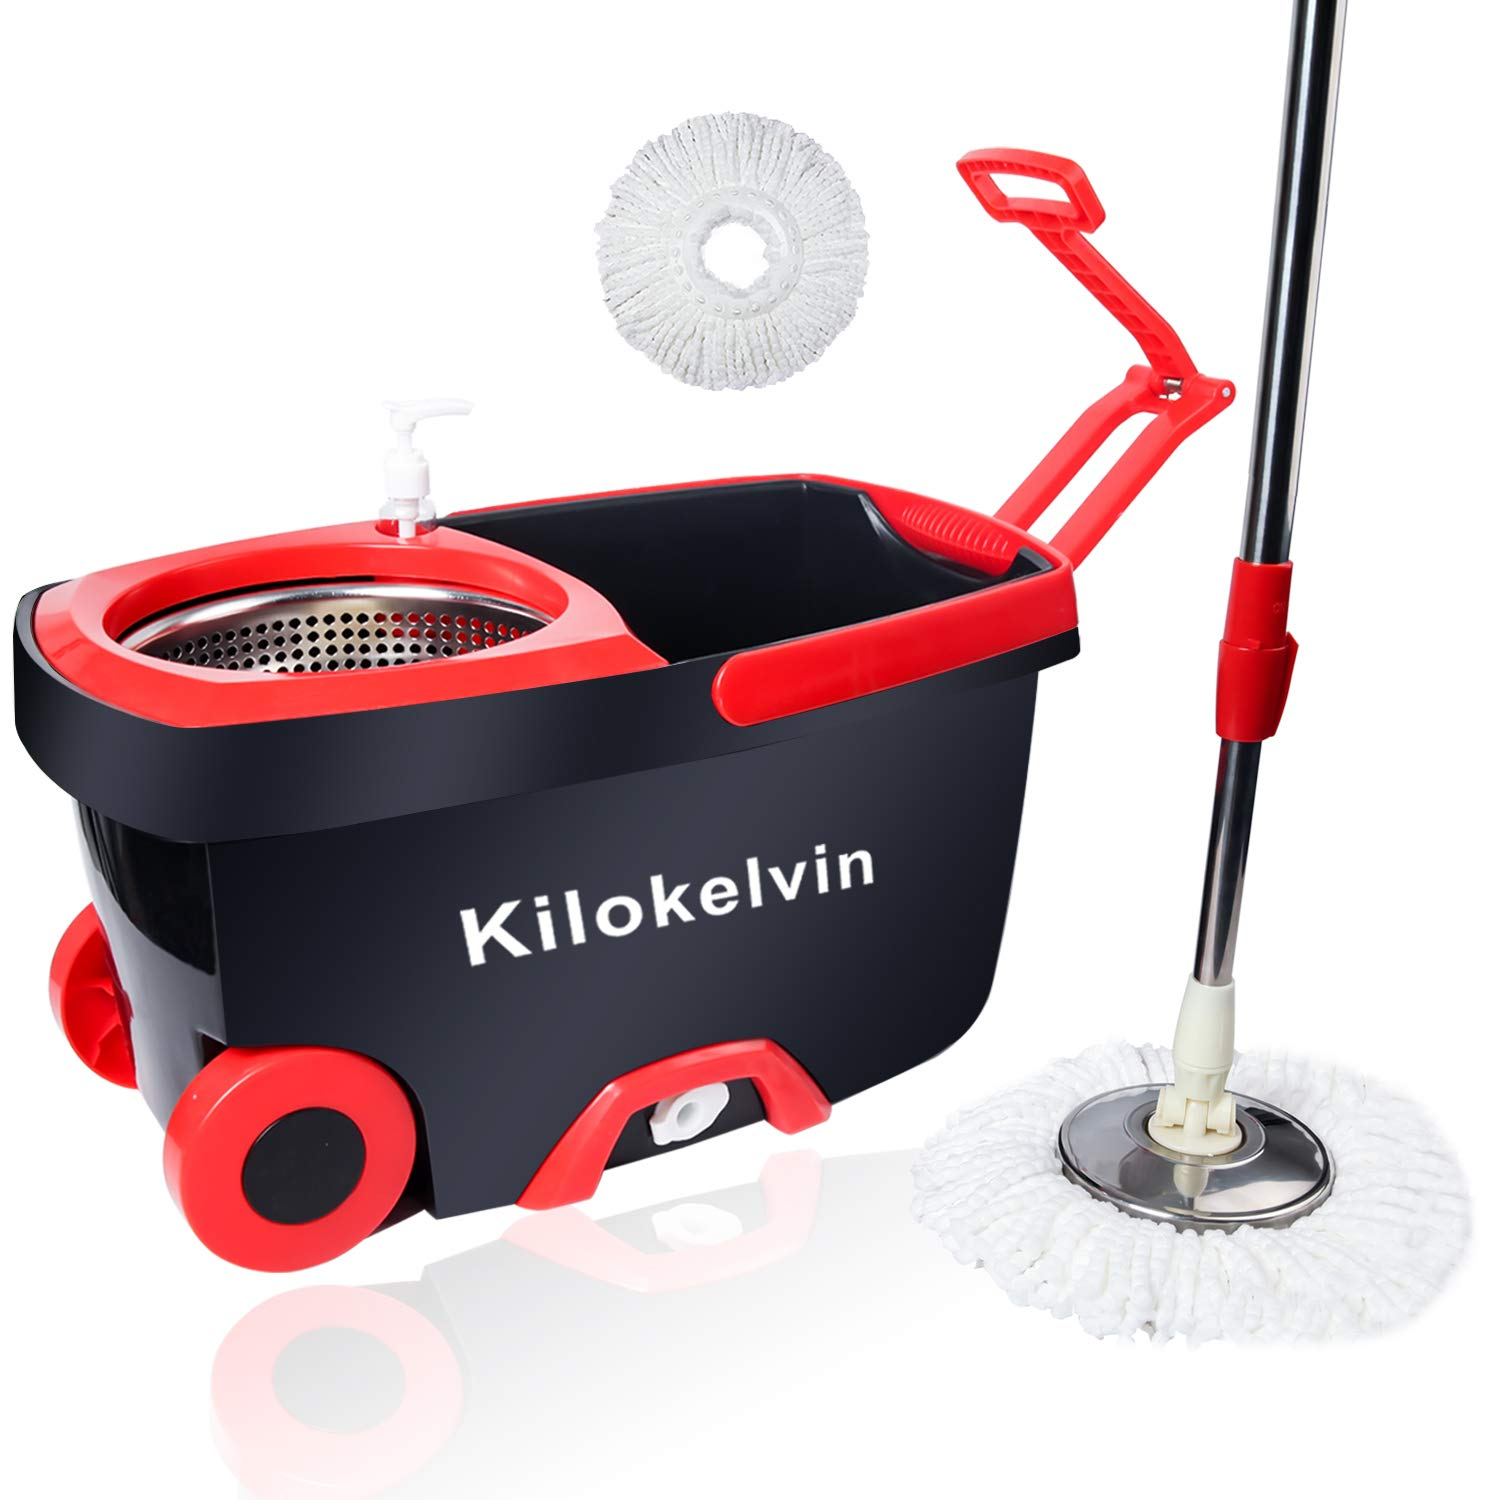 kilokelvin 360 Spin Mop Bucket with 2 Extra Microfiber Head Refills 2x Wheels 61inch Extended Handle Stainless Steel Drainage Basket for Home Floor Cleaning by Kilokelvin (Image #1)